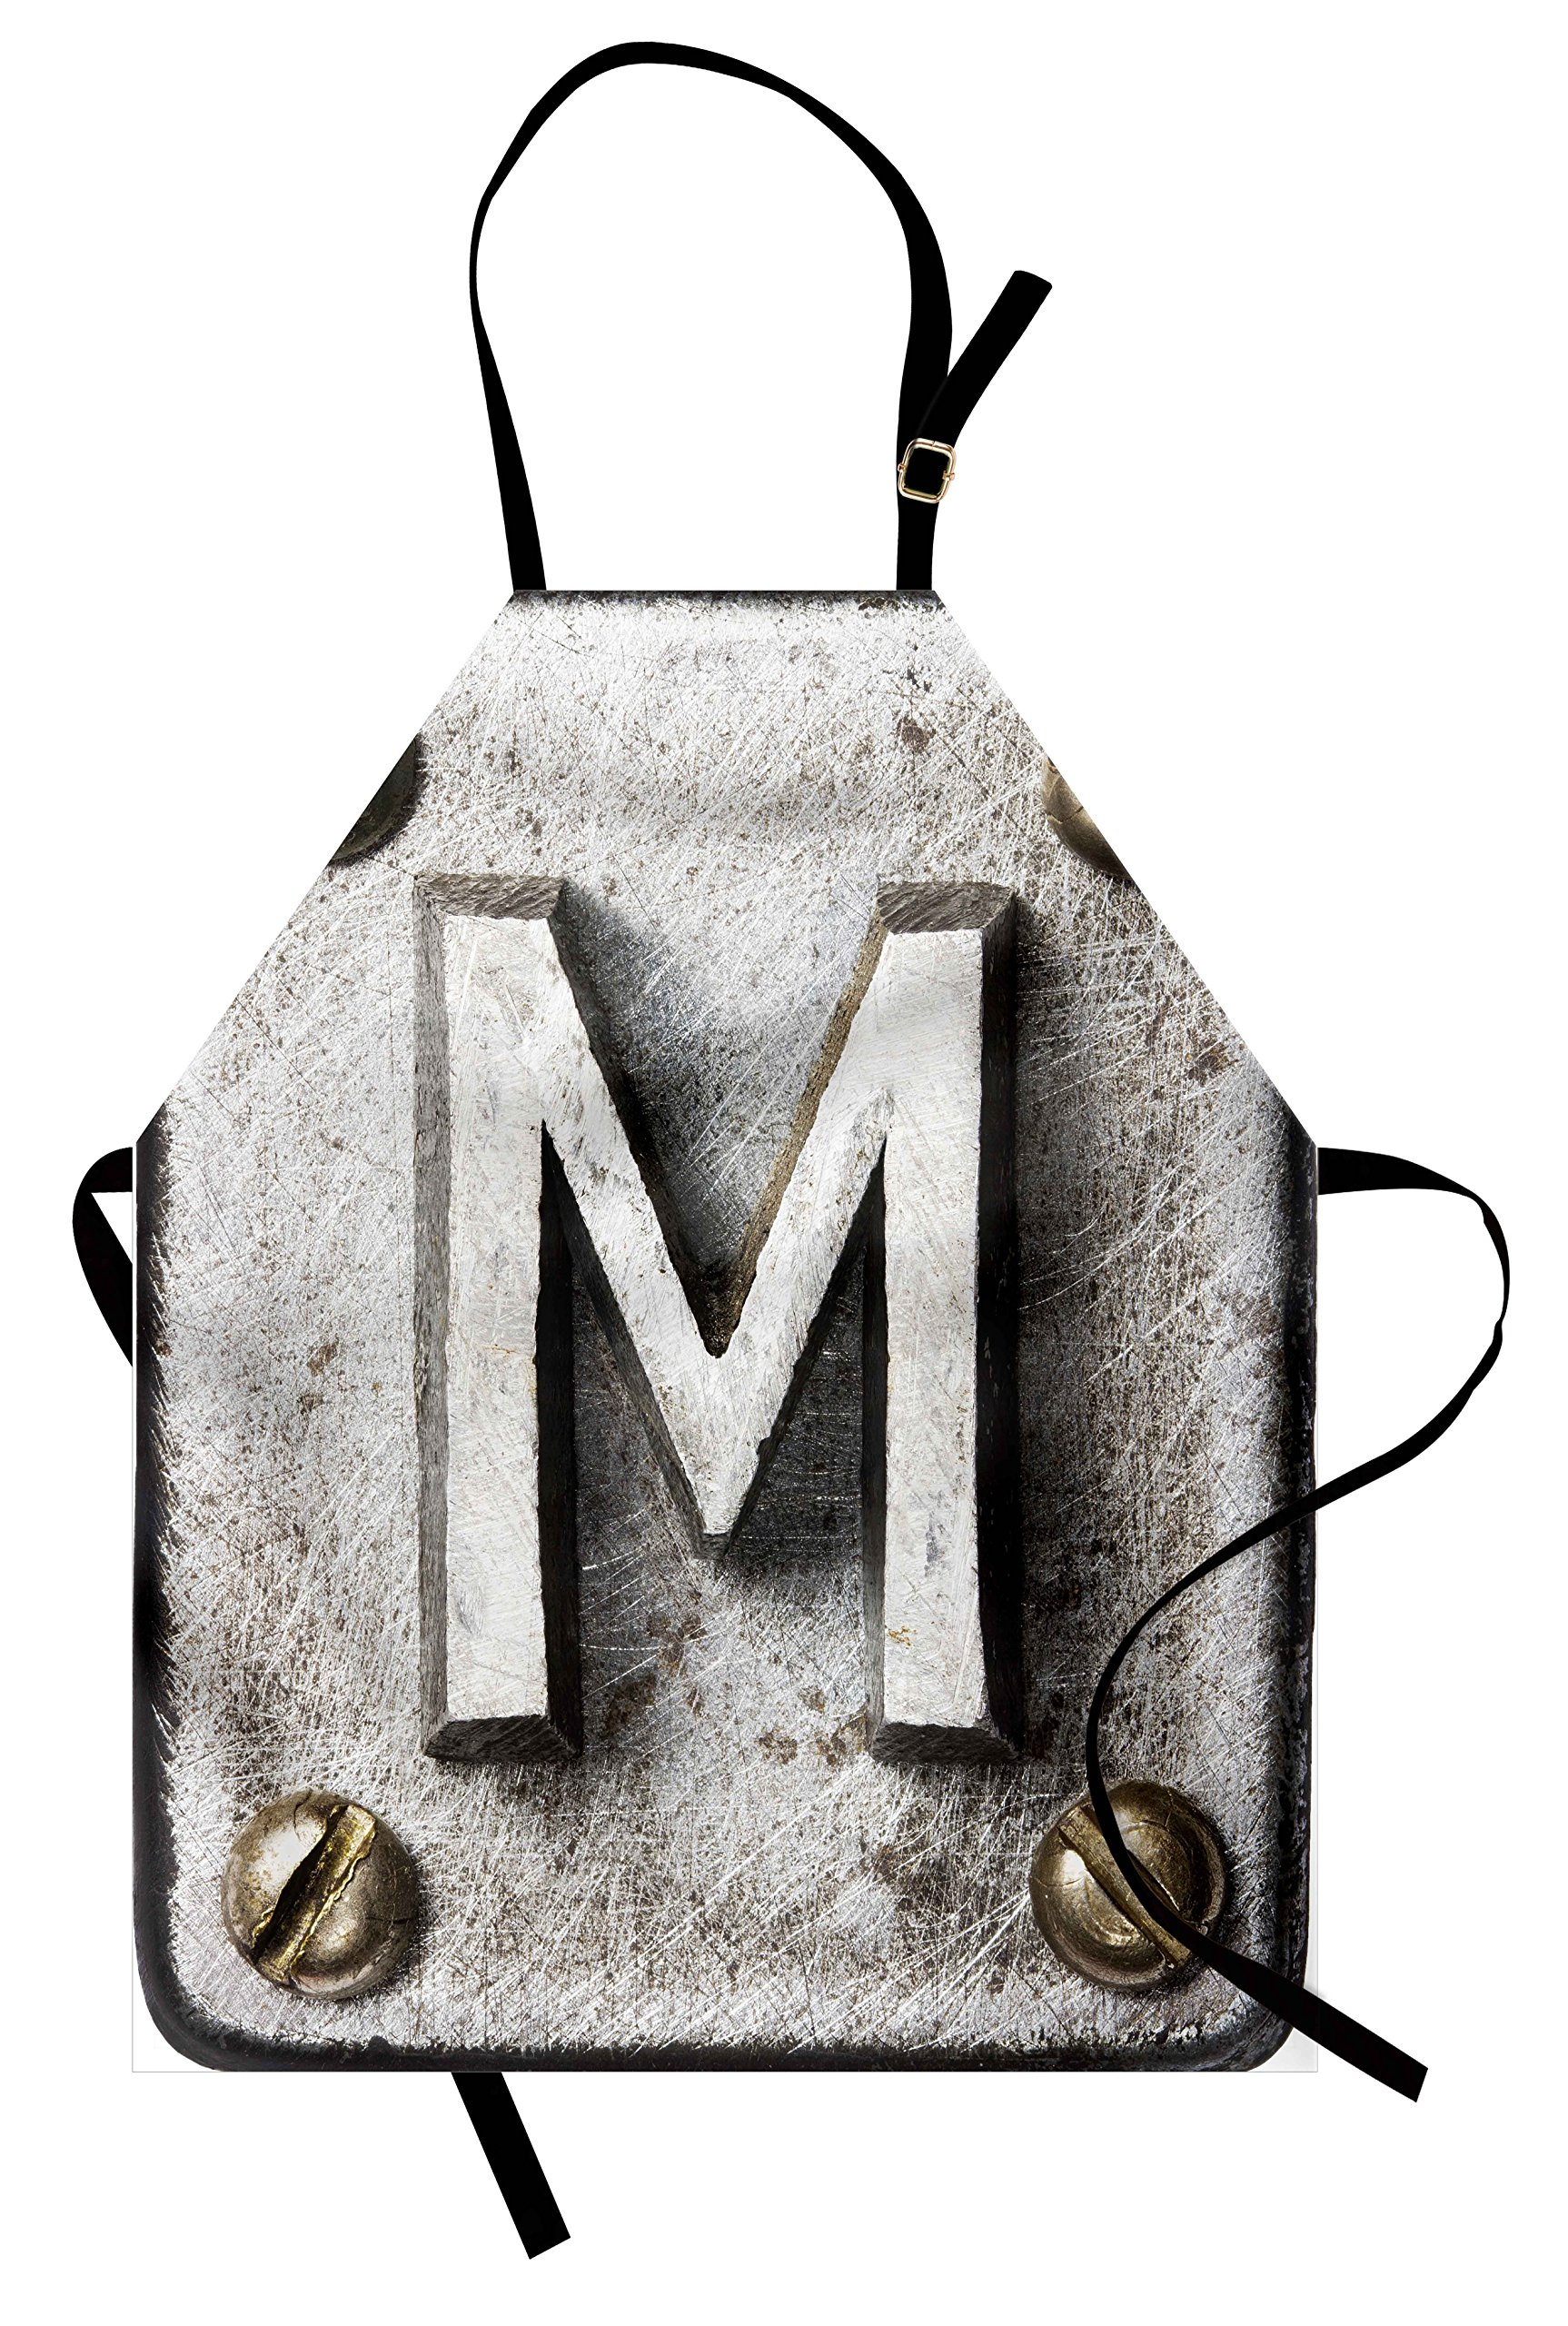 Ambesonne Letter M Apron, Zinc Iron Steel Alphabet Typeset with Grunge Scratched Texture Industrial Image, Unisex Kitchen Bib Apron with Adjustable Neck for Cooking Baking Gardening, Silver Gold